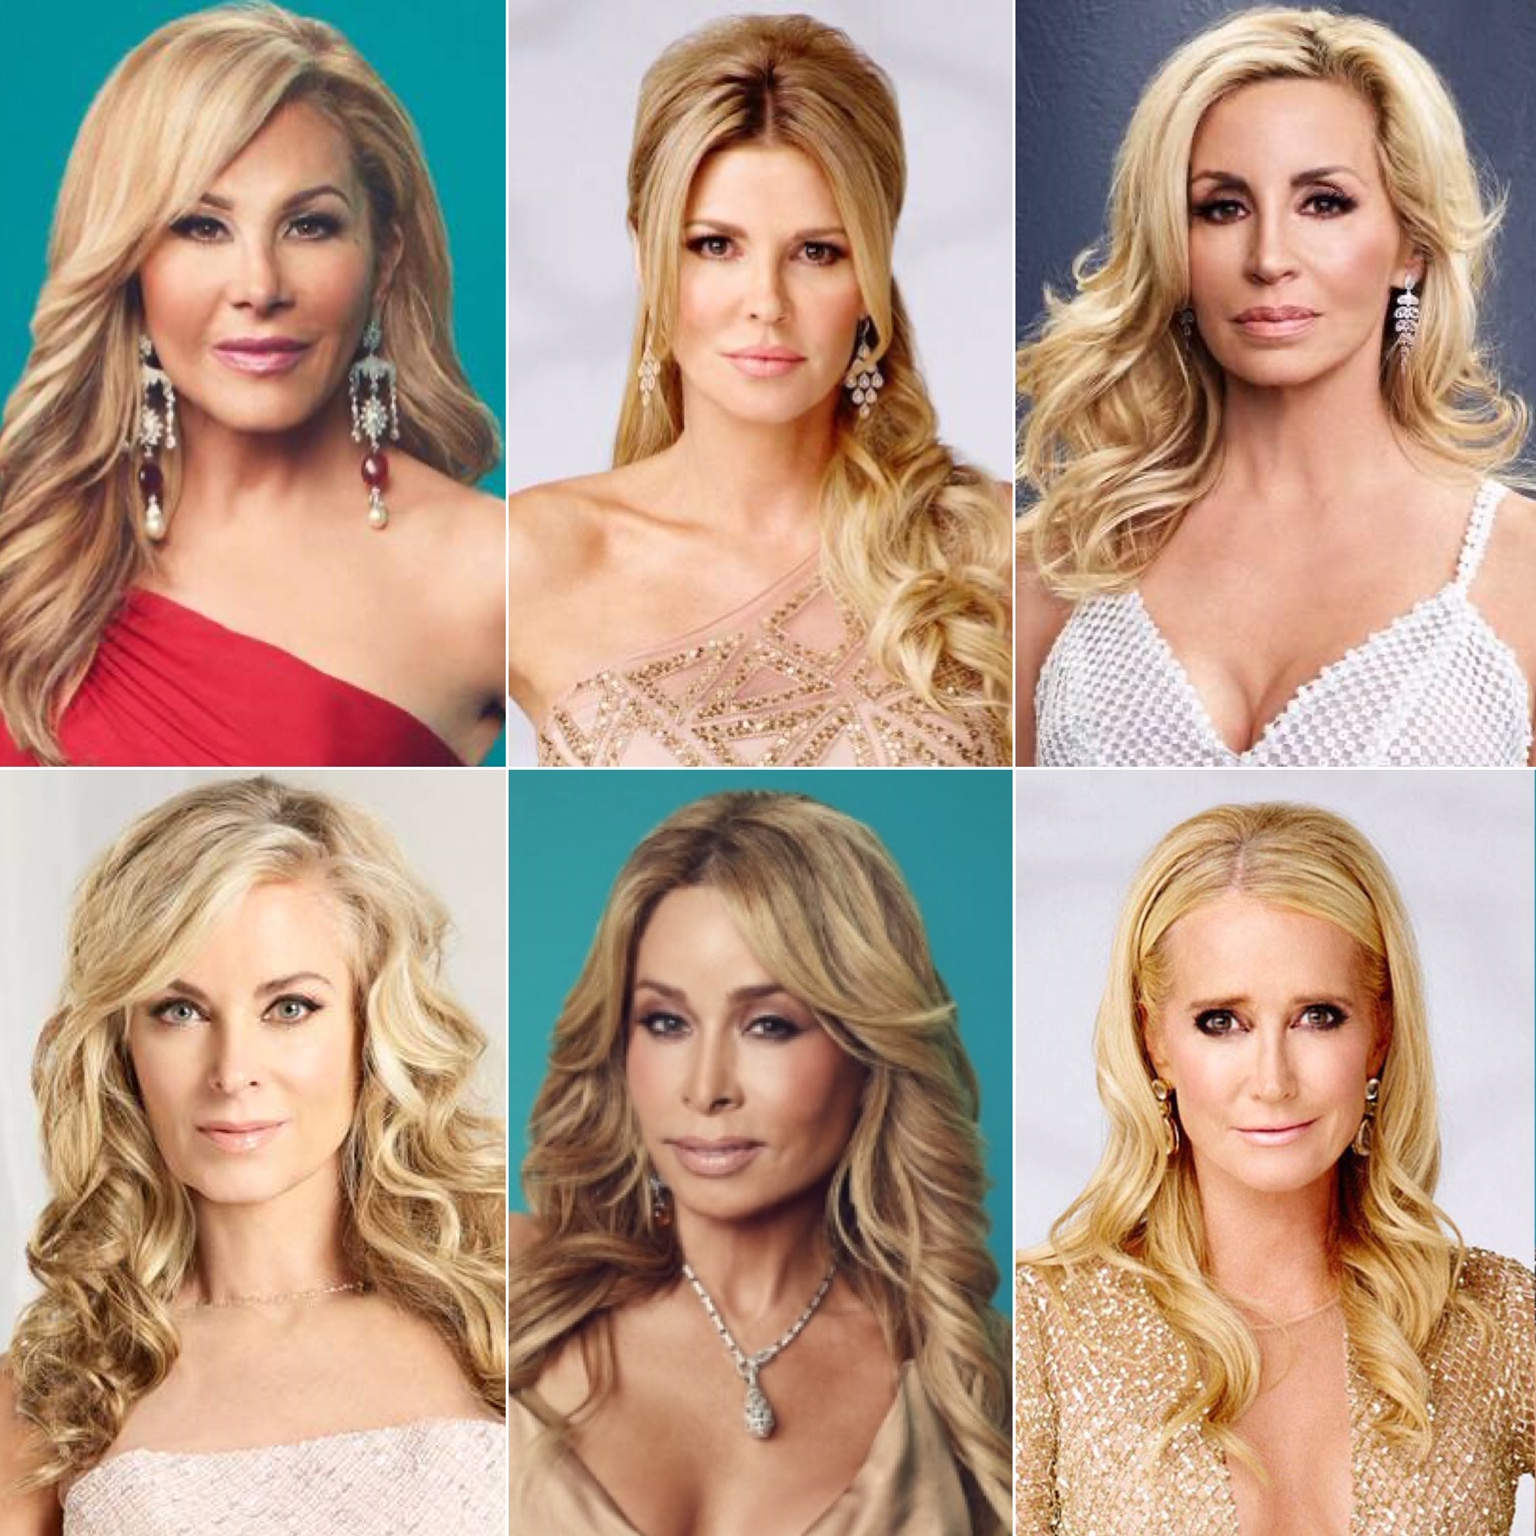 real housewives of beverly hills season 10